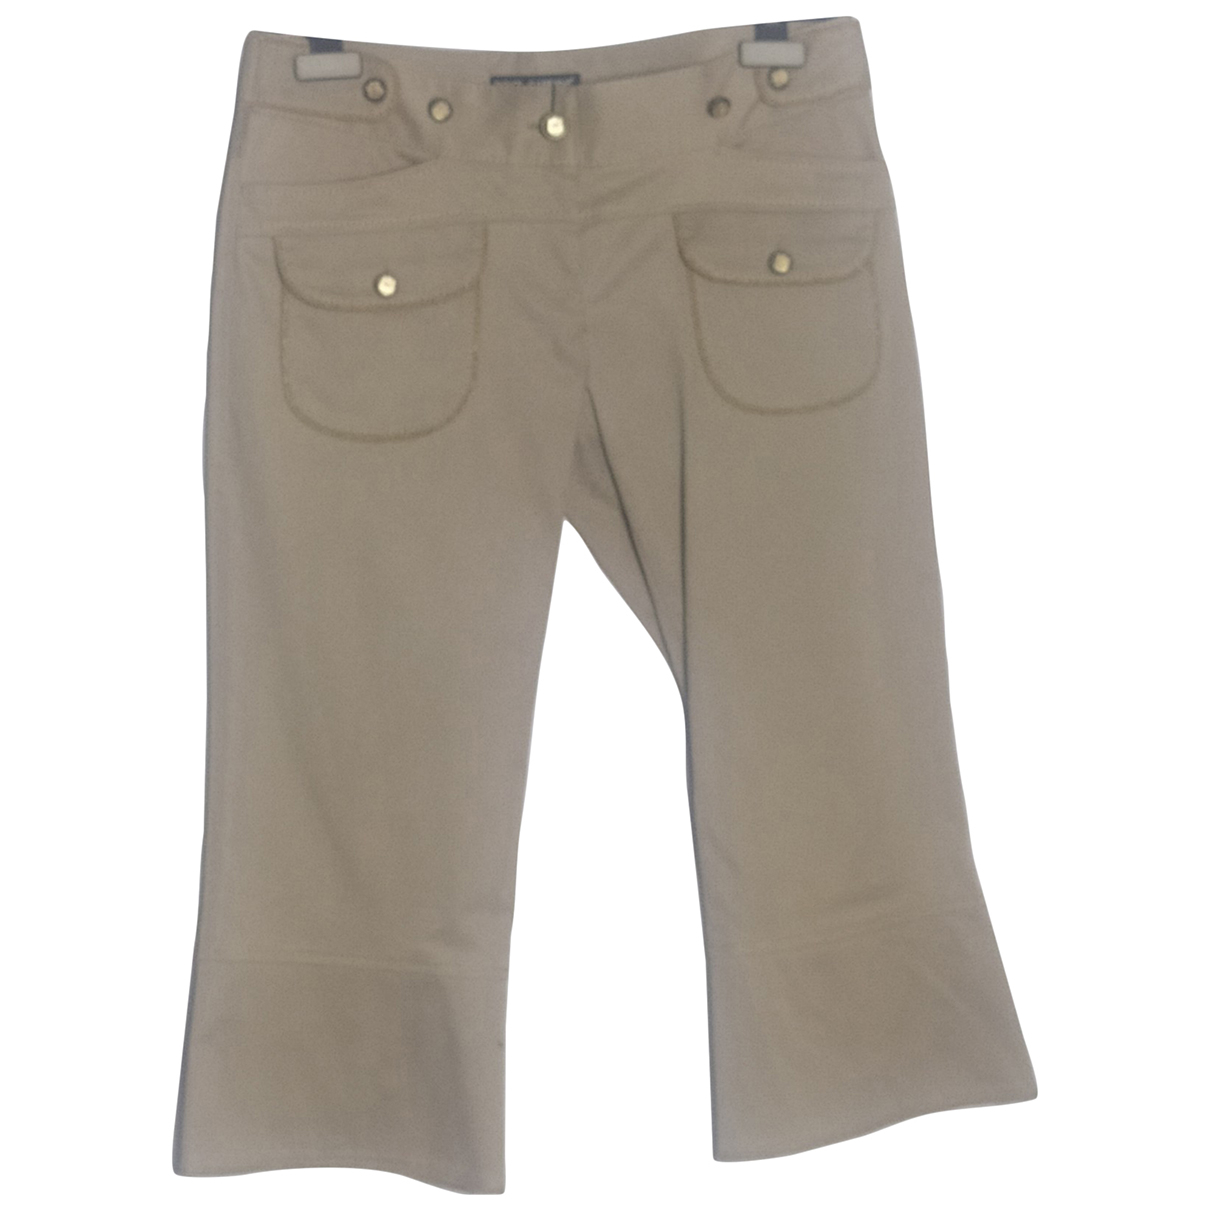 Dolce & Gabbana N Beige Cotton Trousers for Women 40 IT